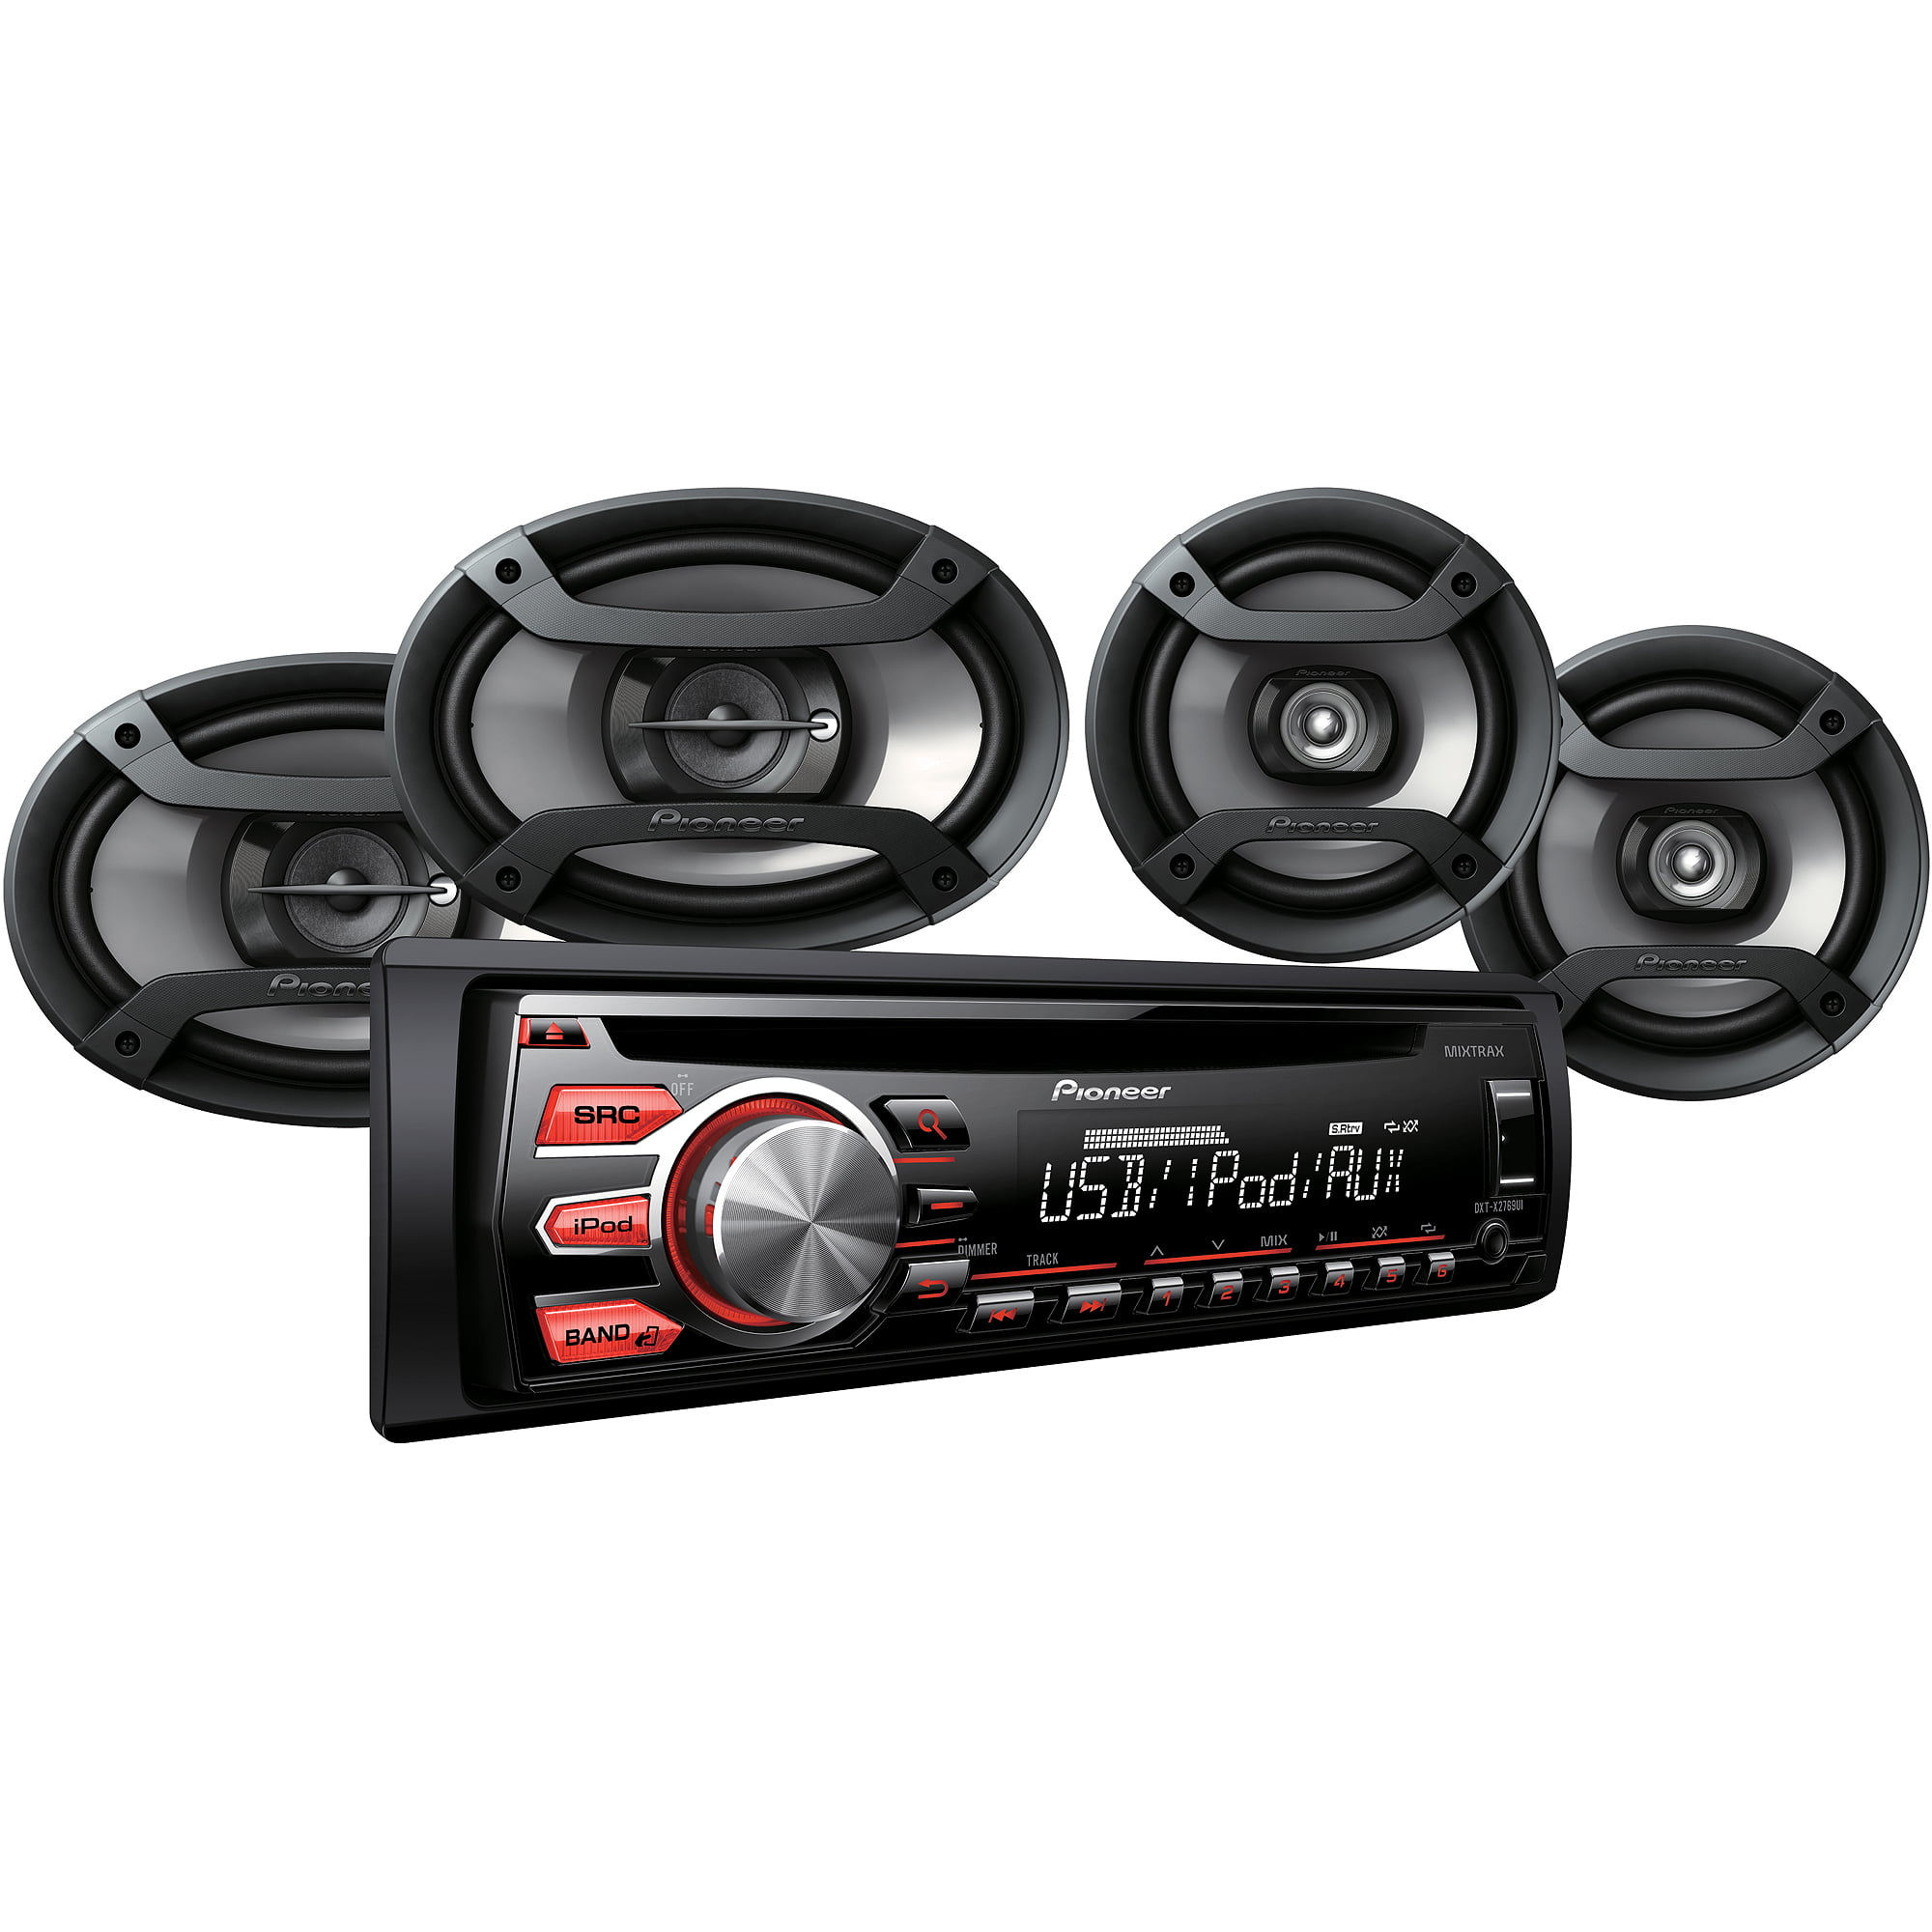 aa768187 b844 4014 ba29 dd3a668748f8_1.086bbc75433876a75cf3e31158ec181e pioneer car audio bundle includes cd receiver plus (4) speakers walmart stereo wiring harness at mifinder.co